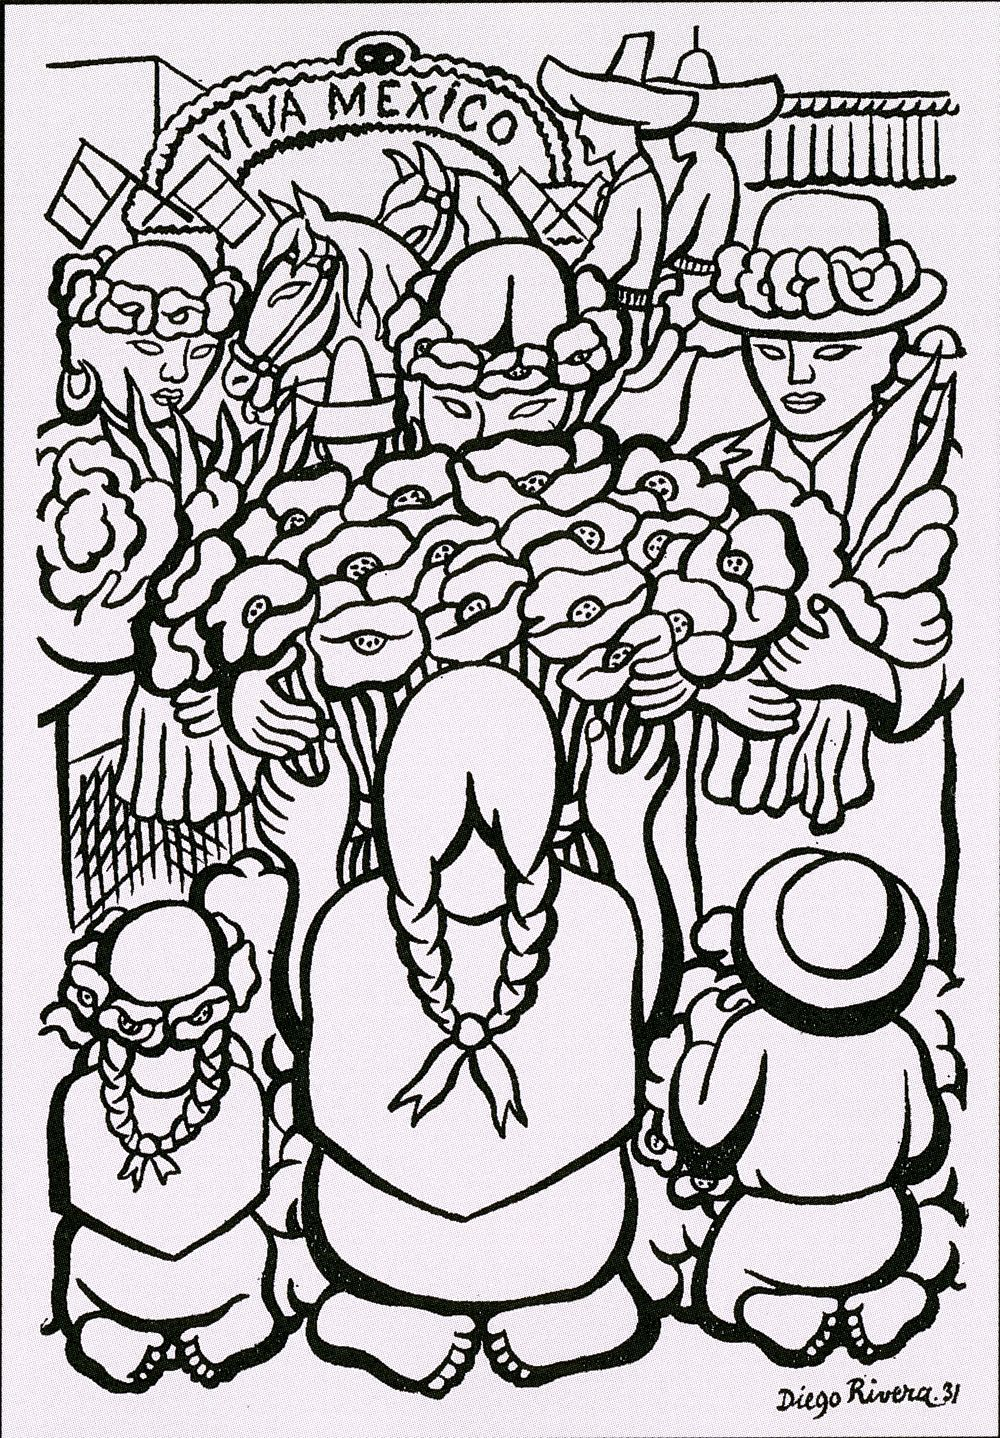 Adult Top Diego Rivera Coloring Pages Gallery Images cute 1000 images about espanol countriesculture on pinterest spanish speaking countries and latin america gallery images